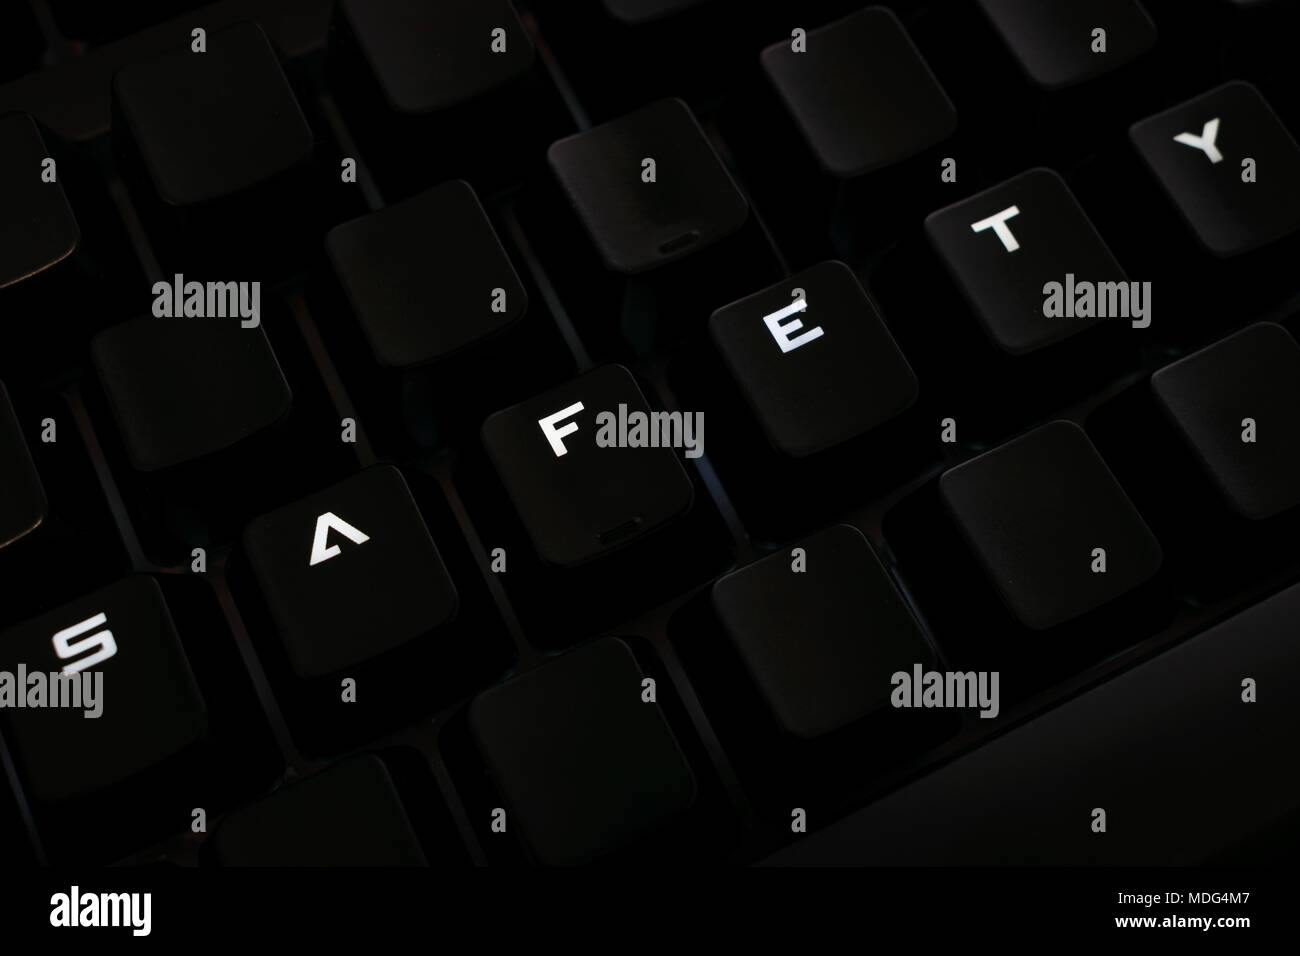 Safety word on keyboard with rearranged letters, backlit keys - Stock Image